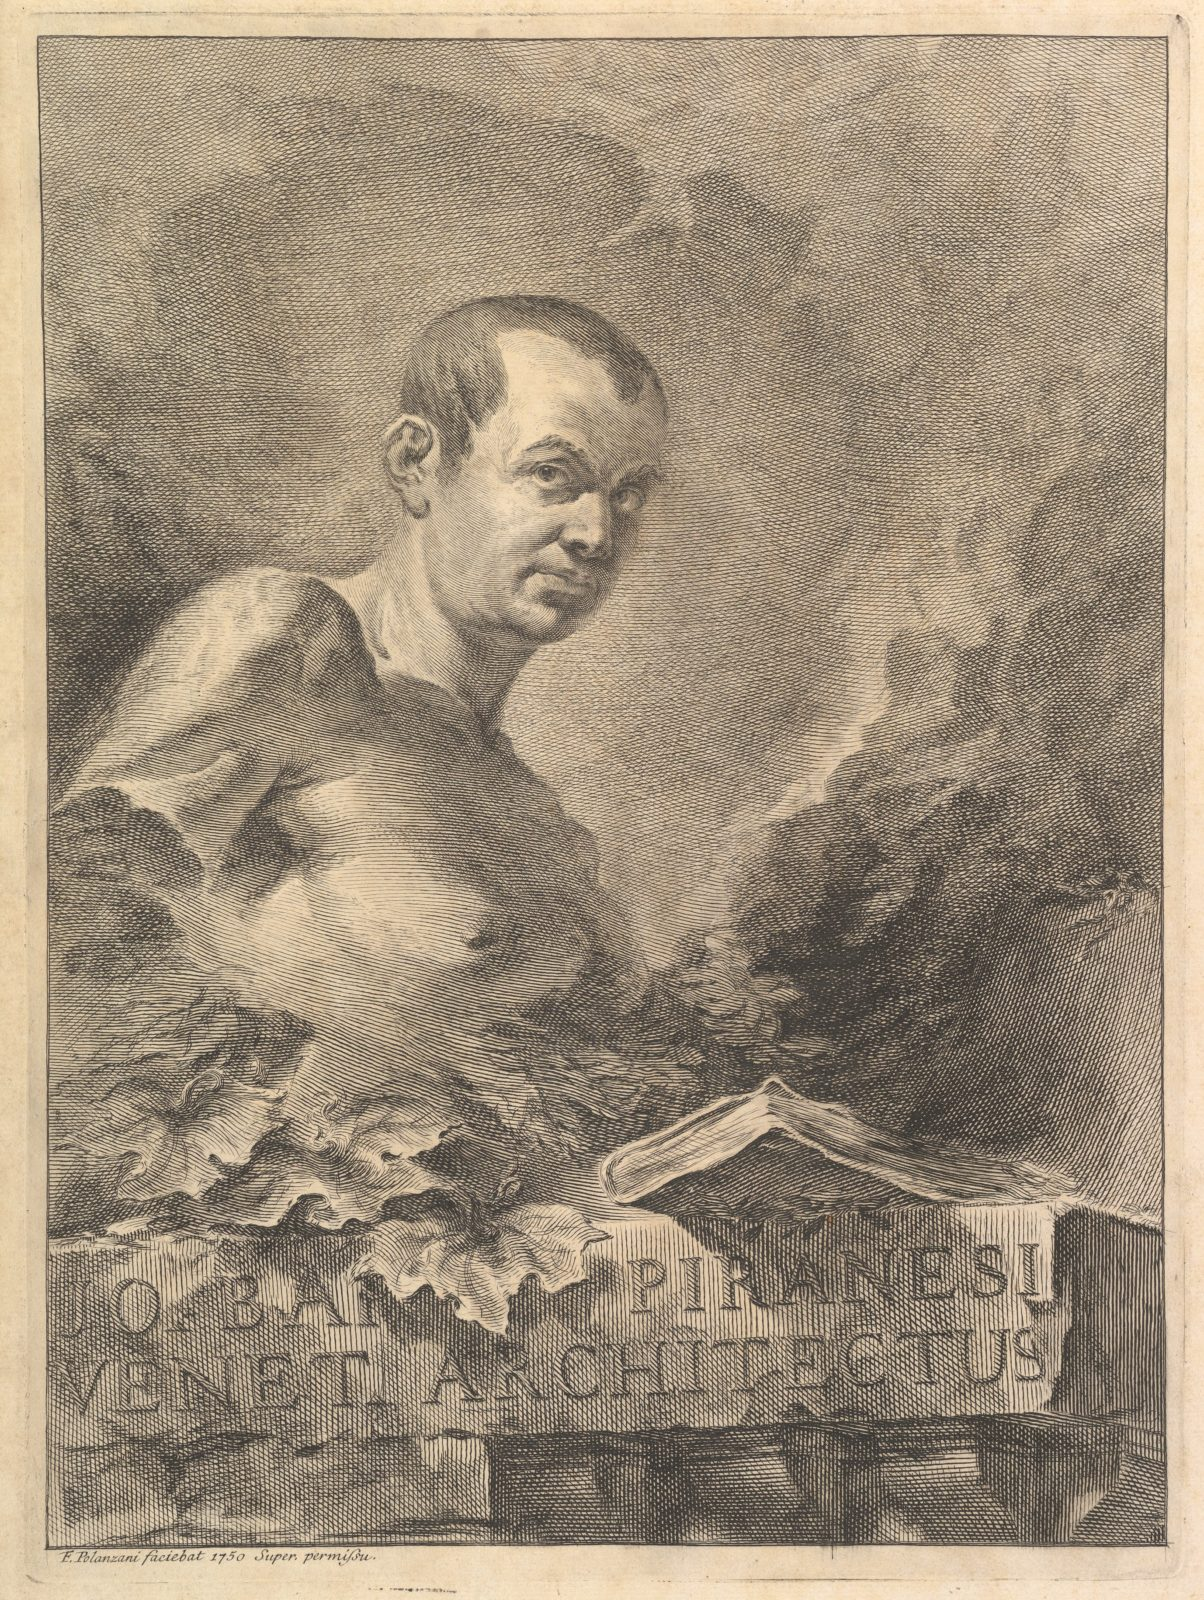 Portrait of G.B. Piranesi in imitation of an antique bust, from Opere varie di Architettura, prospetive, grotteschi, antichità; inventate, ed incise da Giambattista Piranesi Architetto Veneziano (Various Works of Architecture, perspectives, grotesques, and antiquities, designed and etched by Giambattista Piranesi, Venetian Architect)